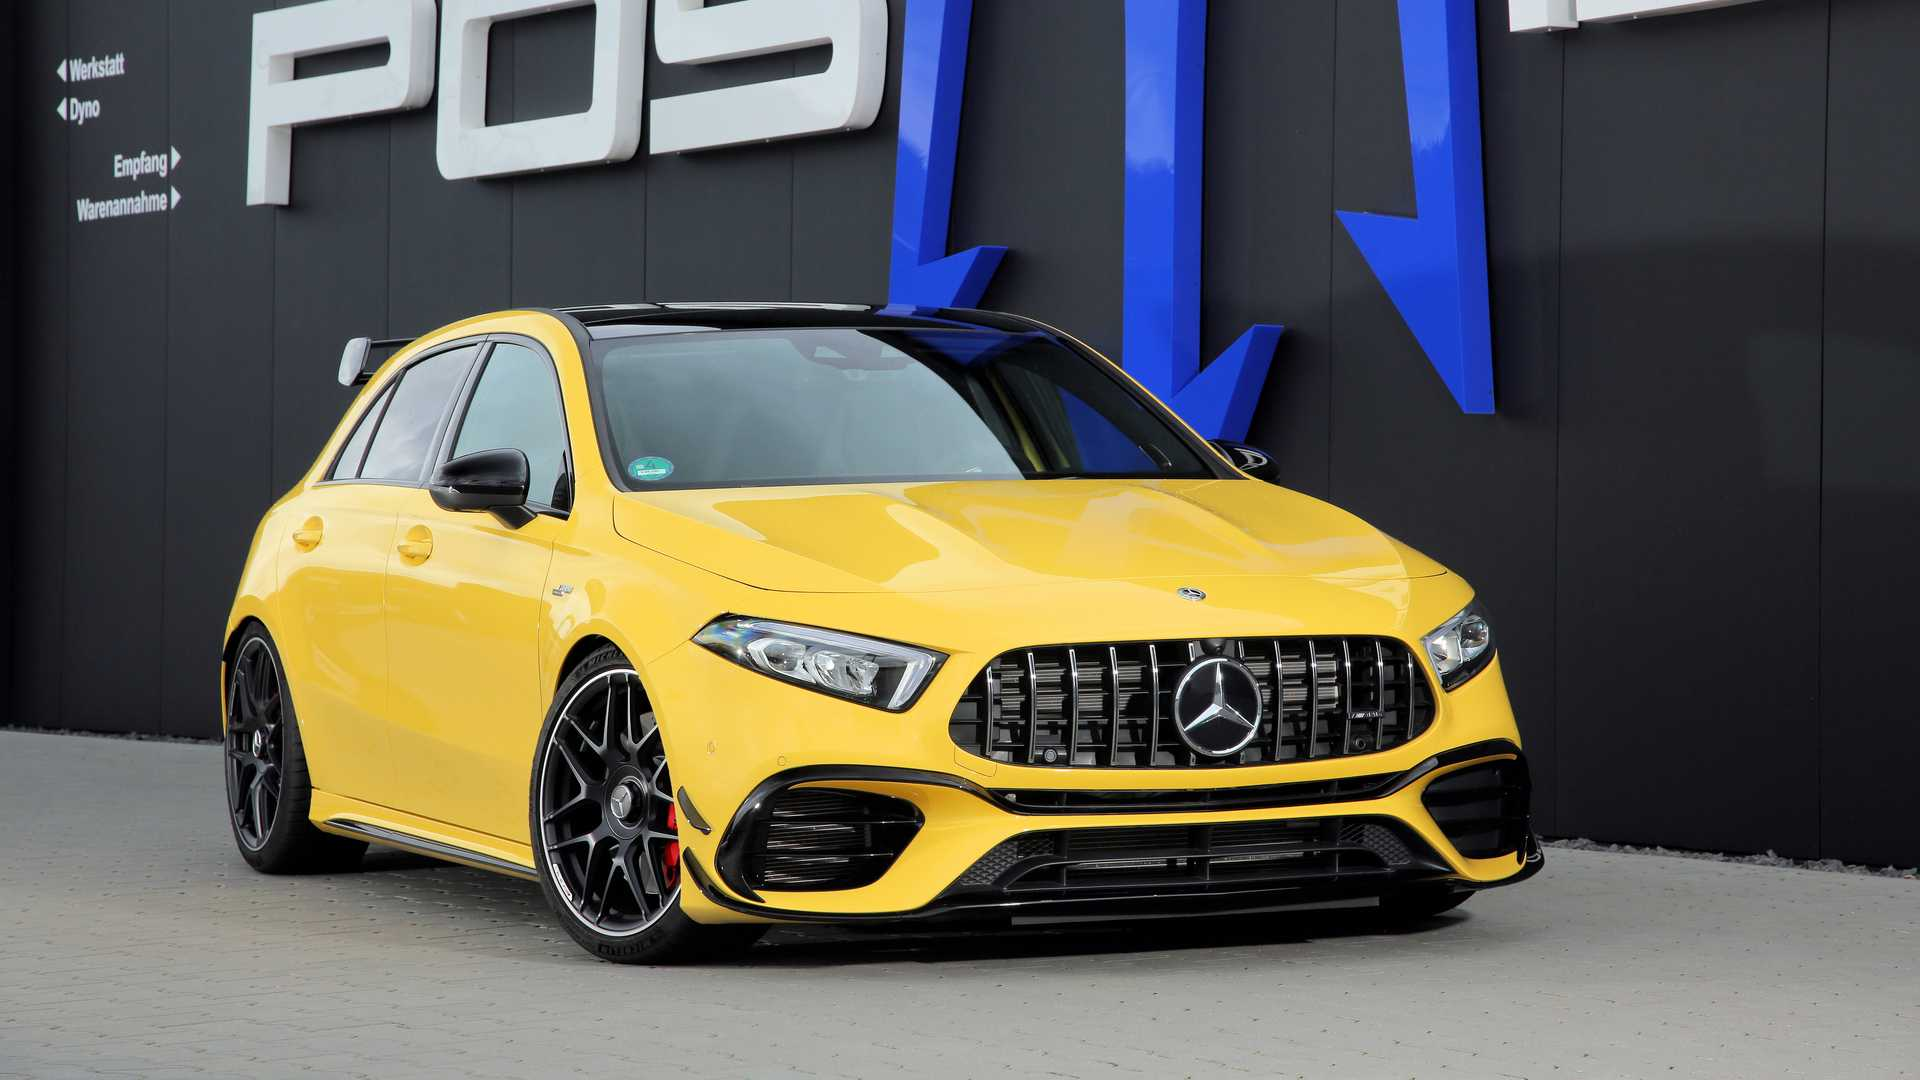 Mercedes-AMG A45 S 2020 Posaidon